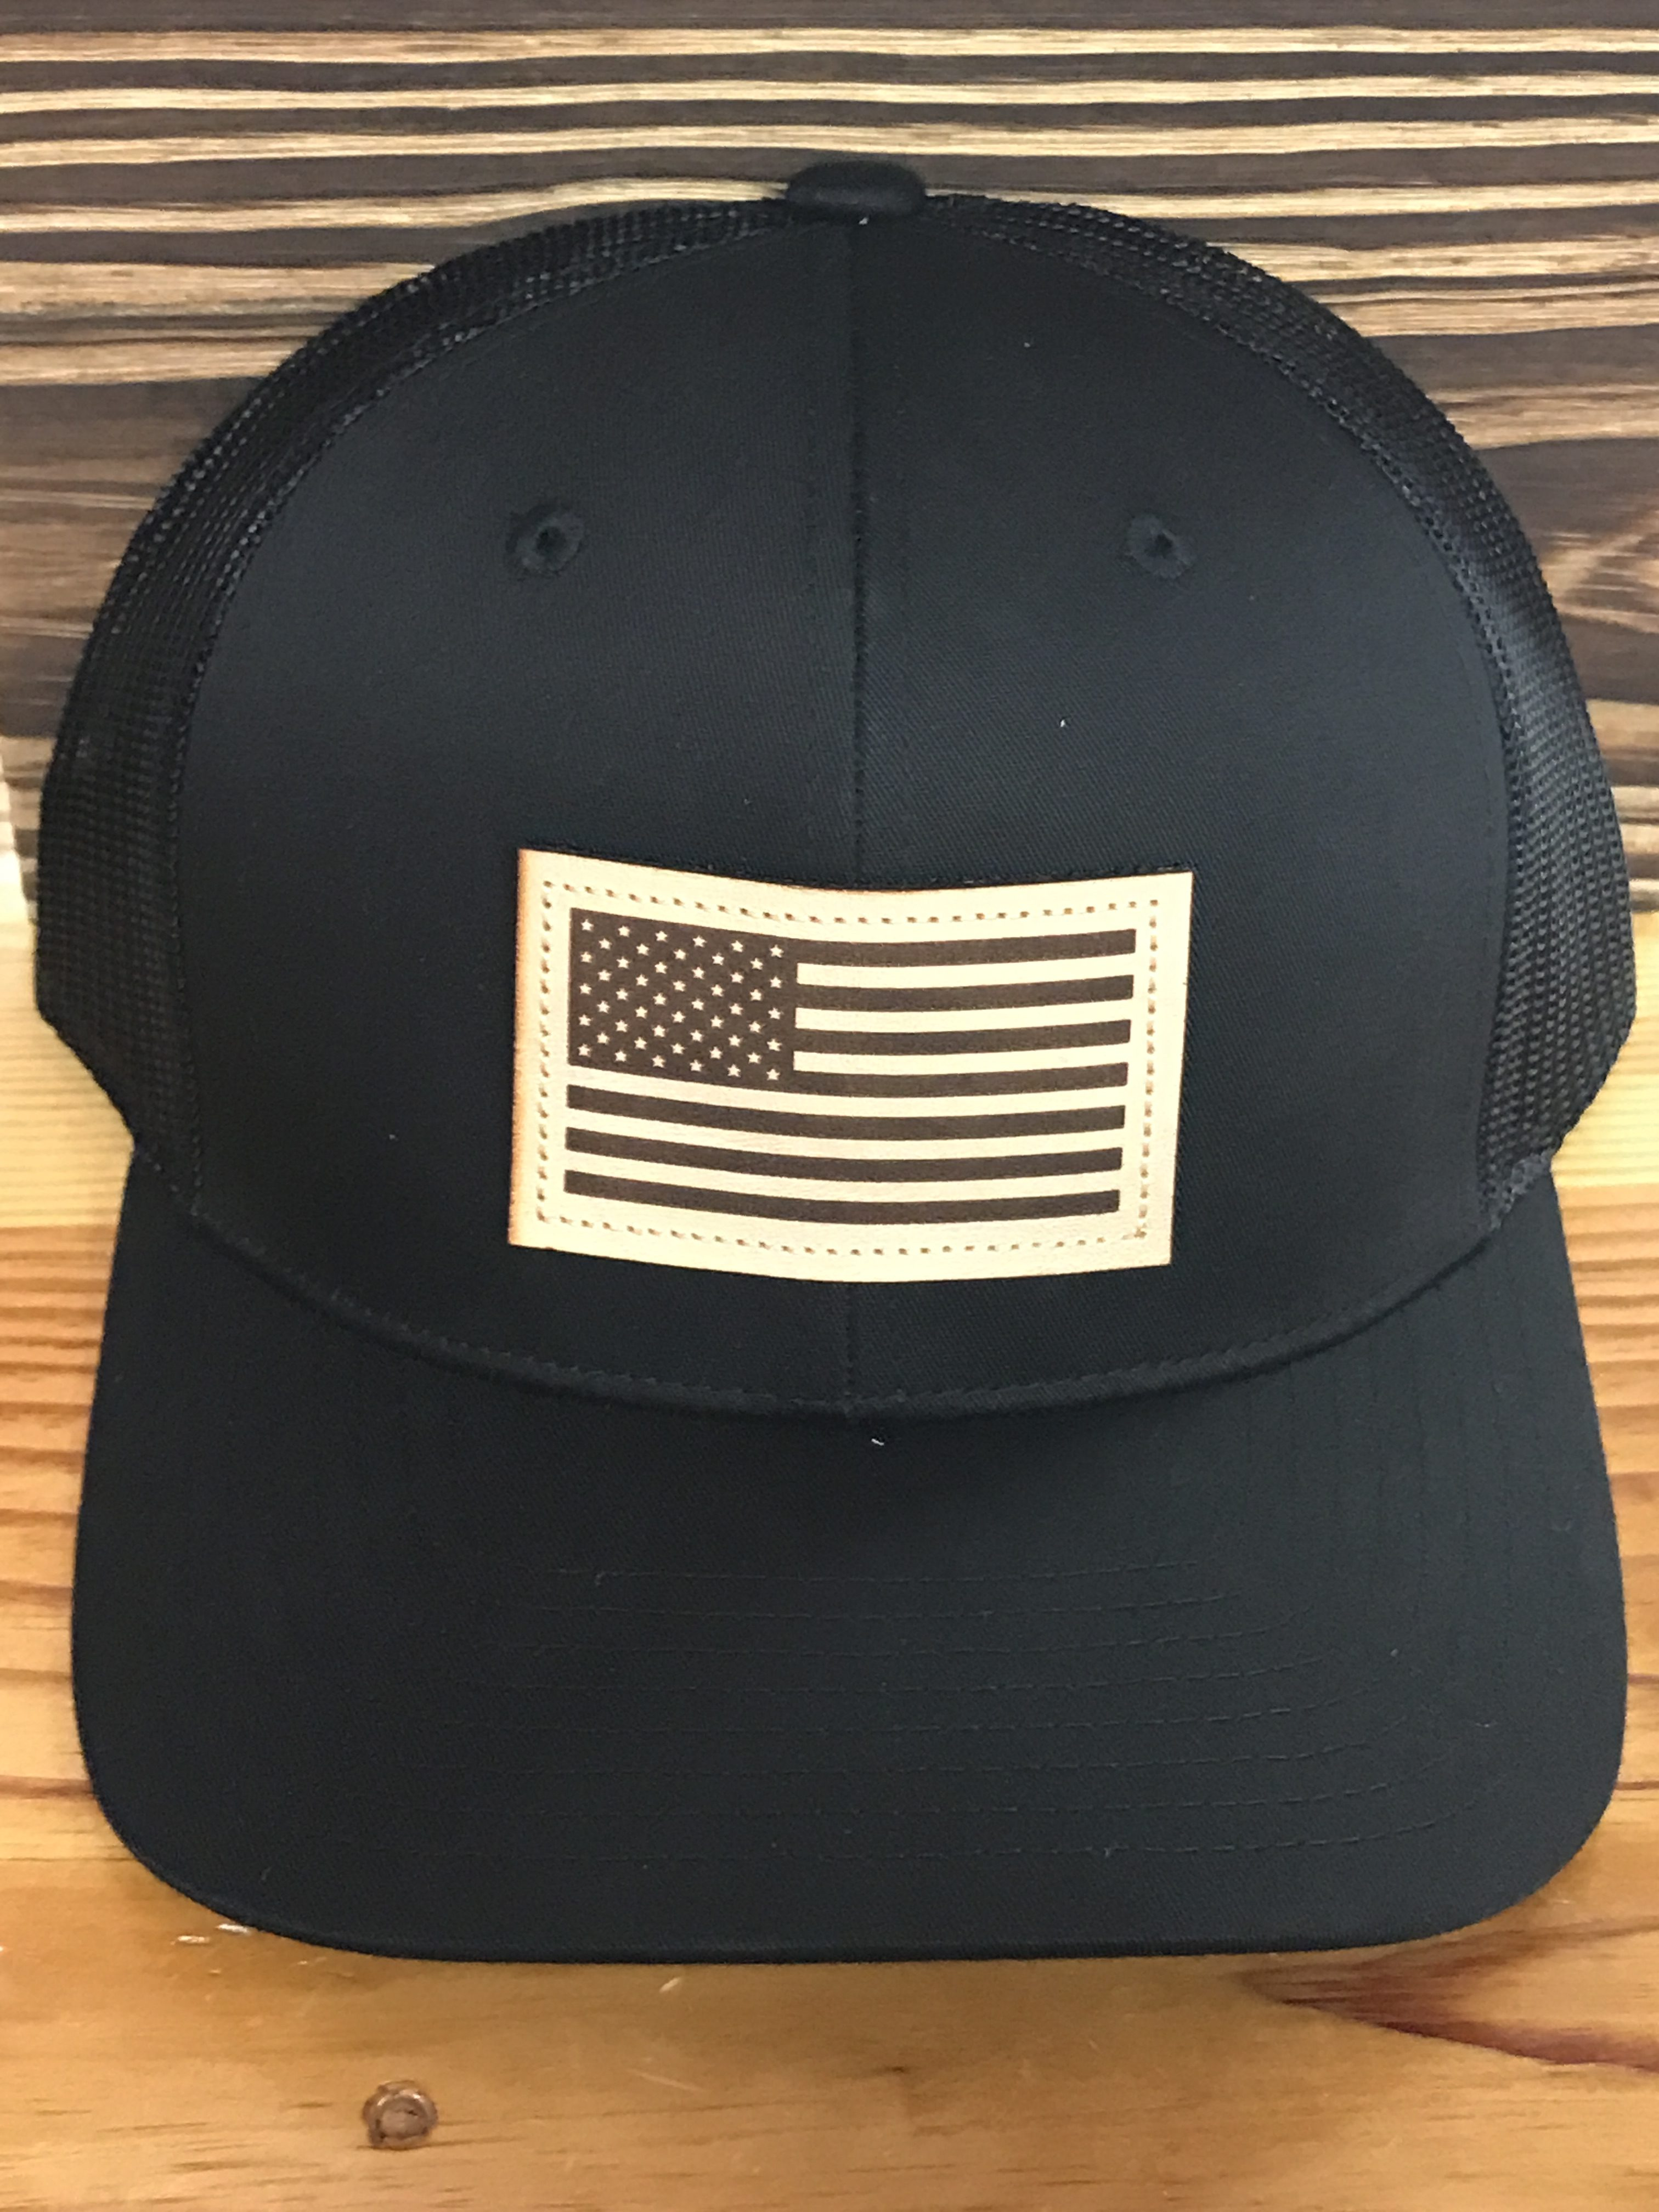 Captuer USA Flag Leather Patch Trucker Hat Black/Black